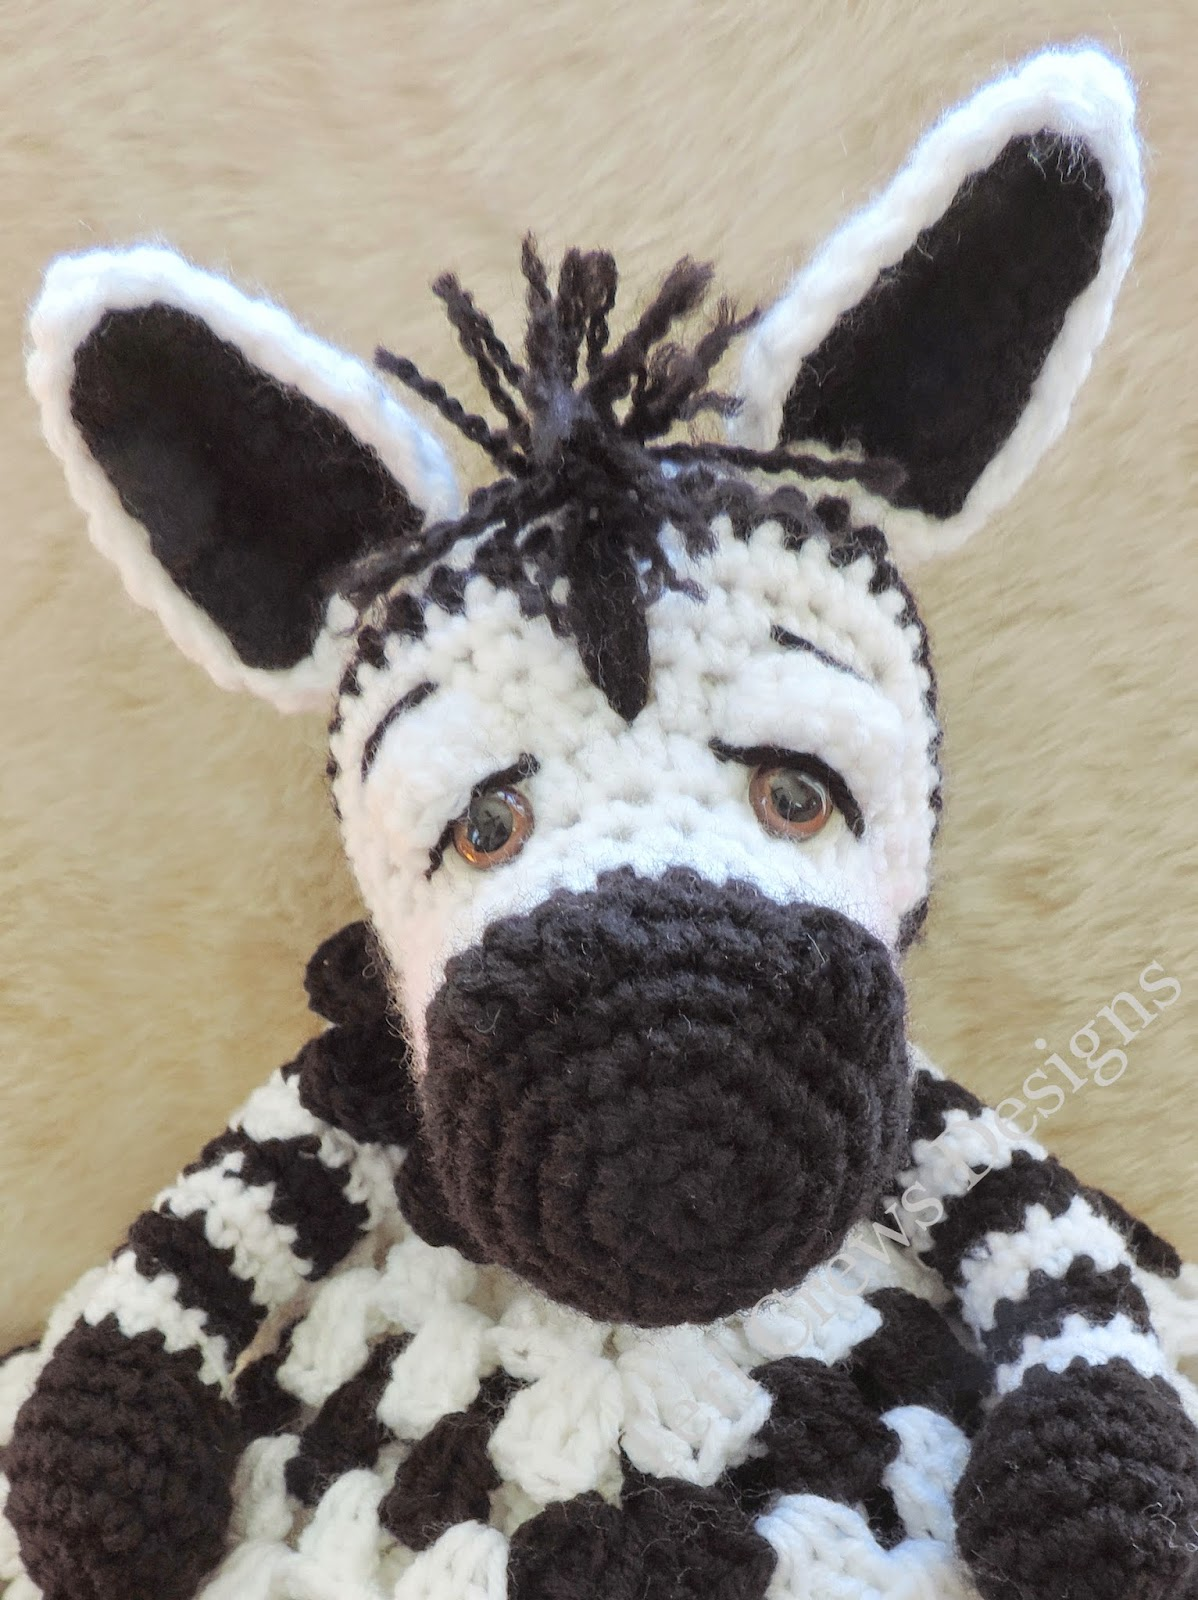 Crochet Zebra Blanket : ... crochet stitches you will need to know how to crochet in the round